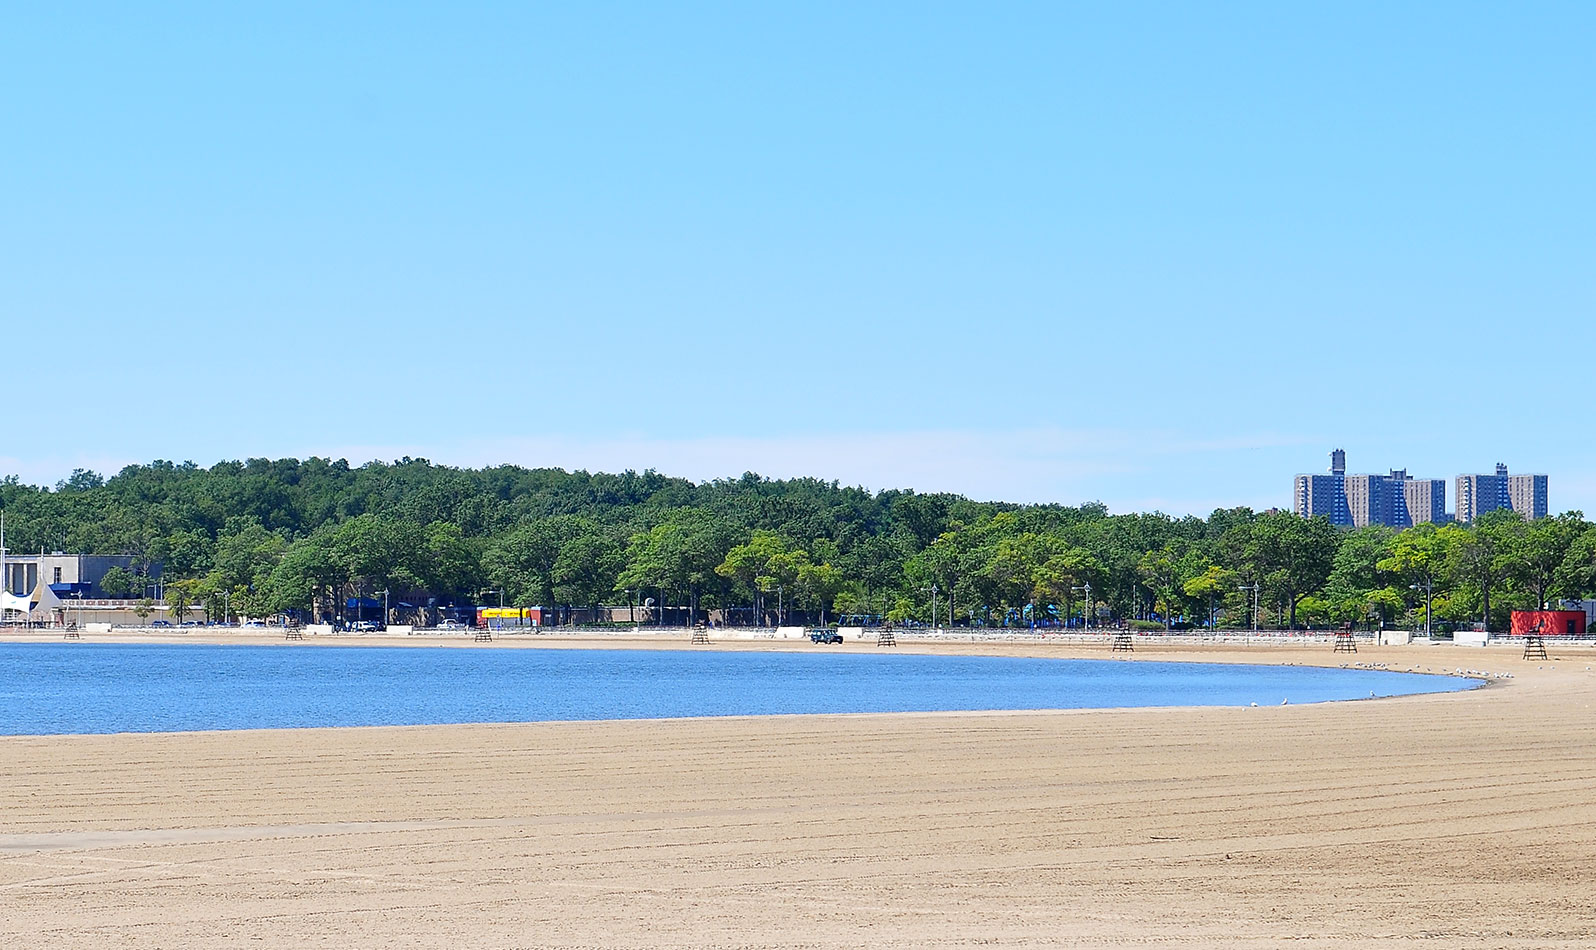 Cool down at Orchard Beach, also called the Bronx Riviera, the only public beach in the borough!